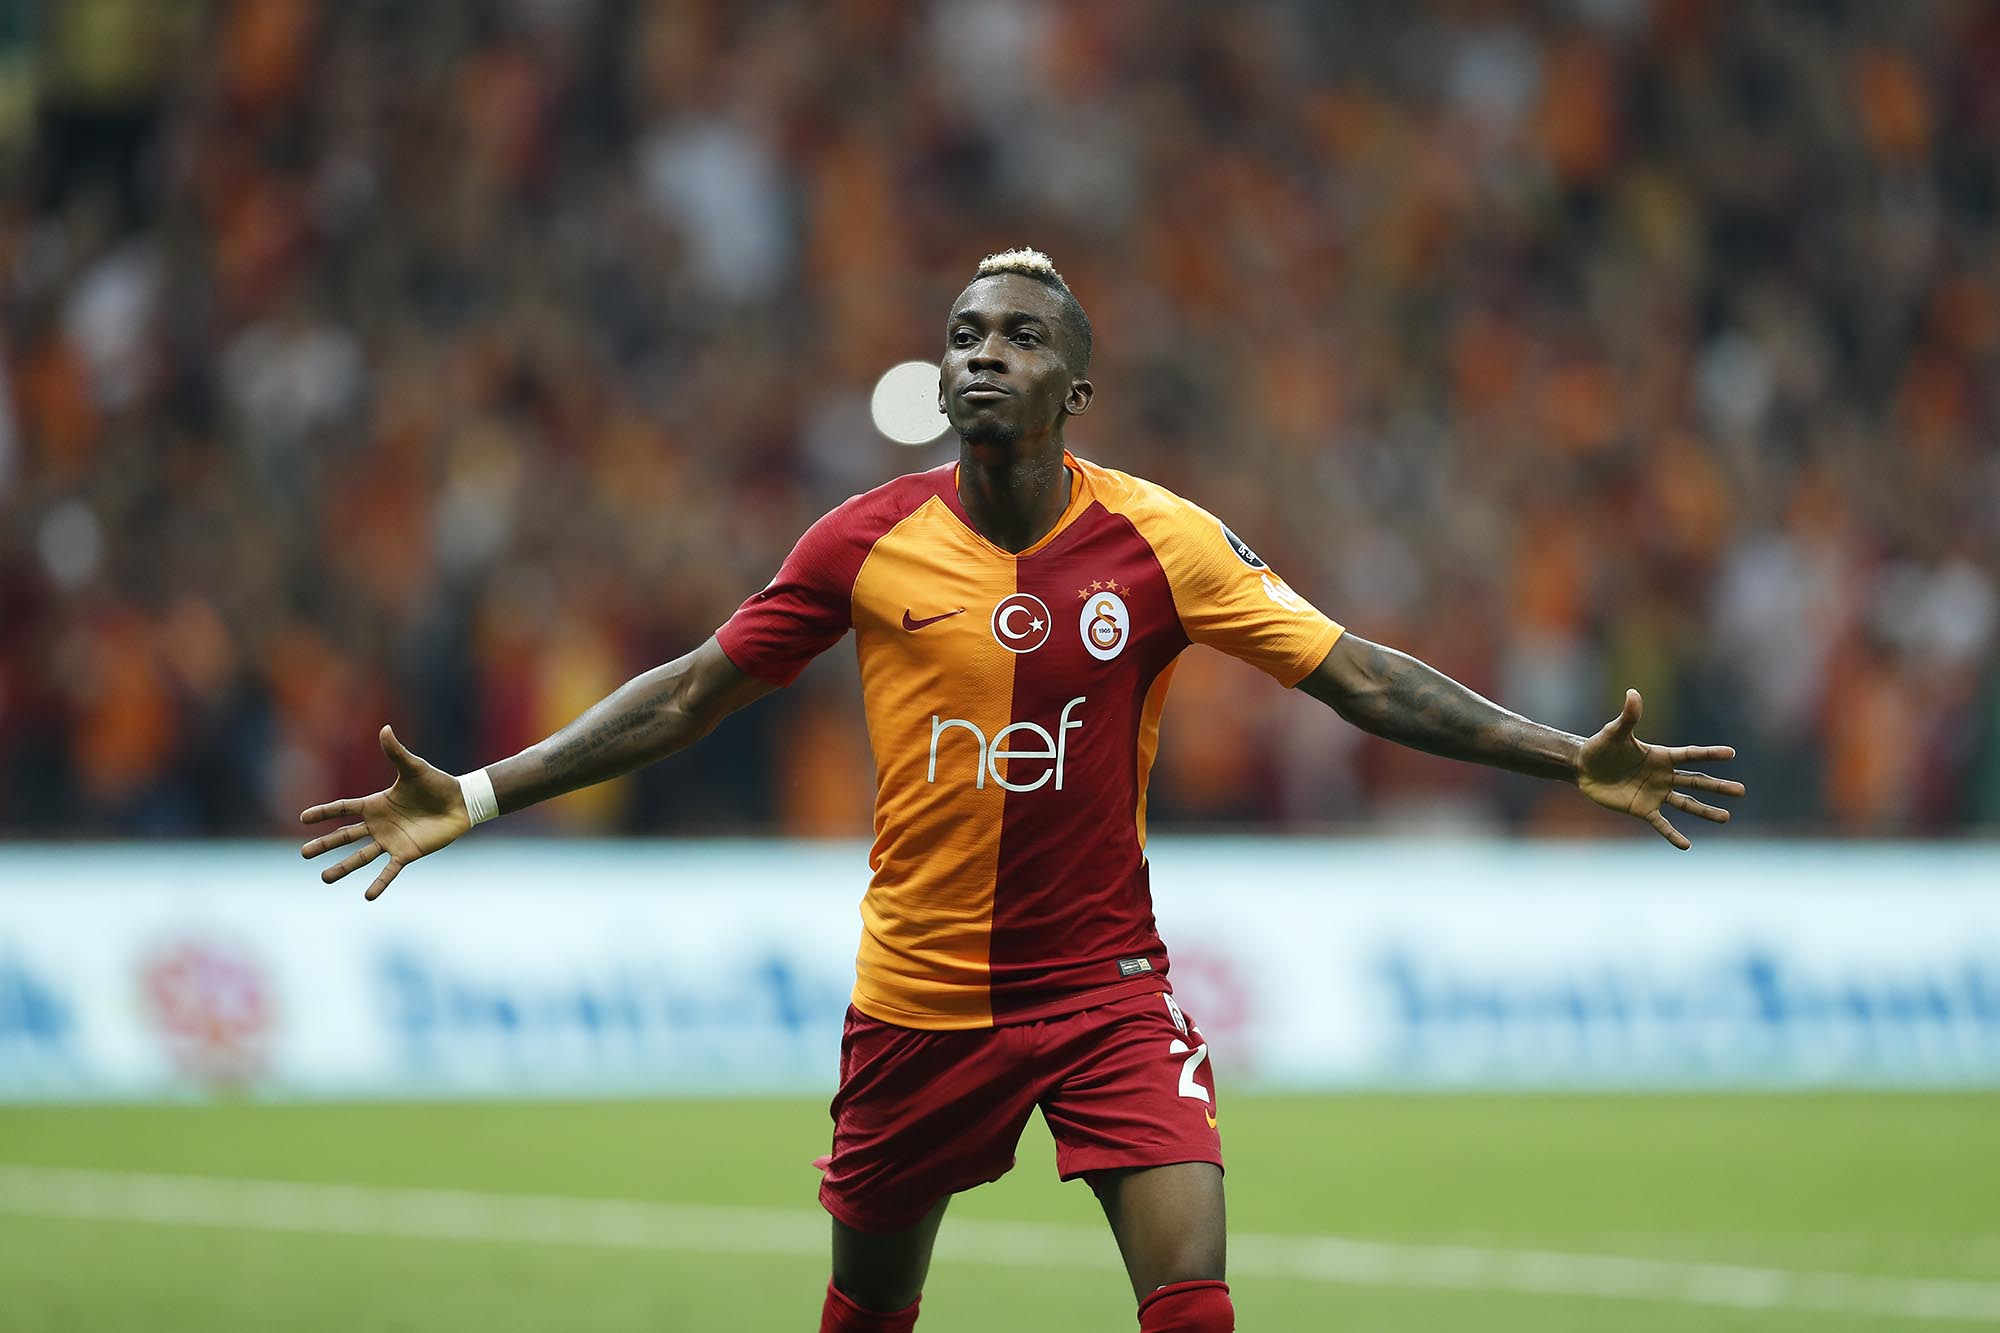 Roundup: Onyekuru Nets Goal No.2 In Turkey; Simon, Aremu Missing In Monday's Clashes